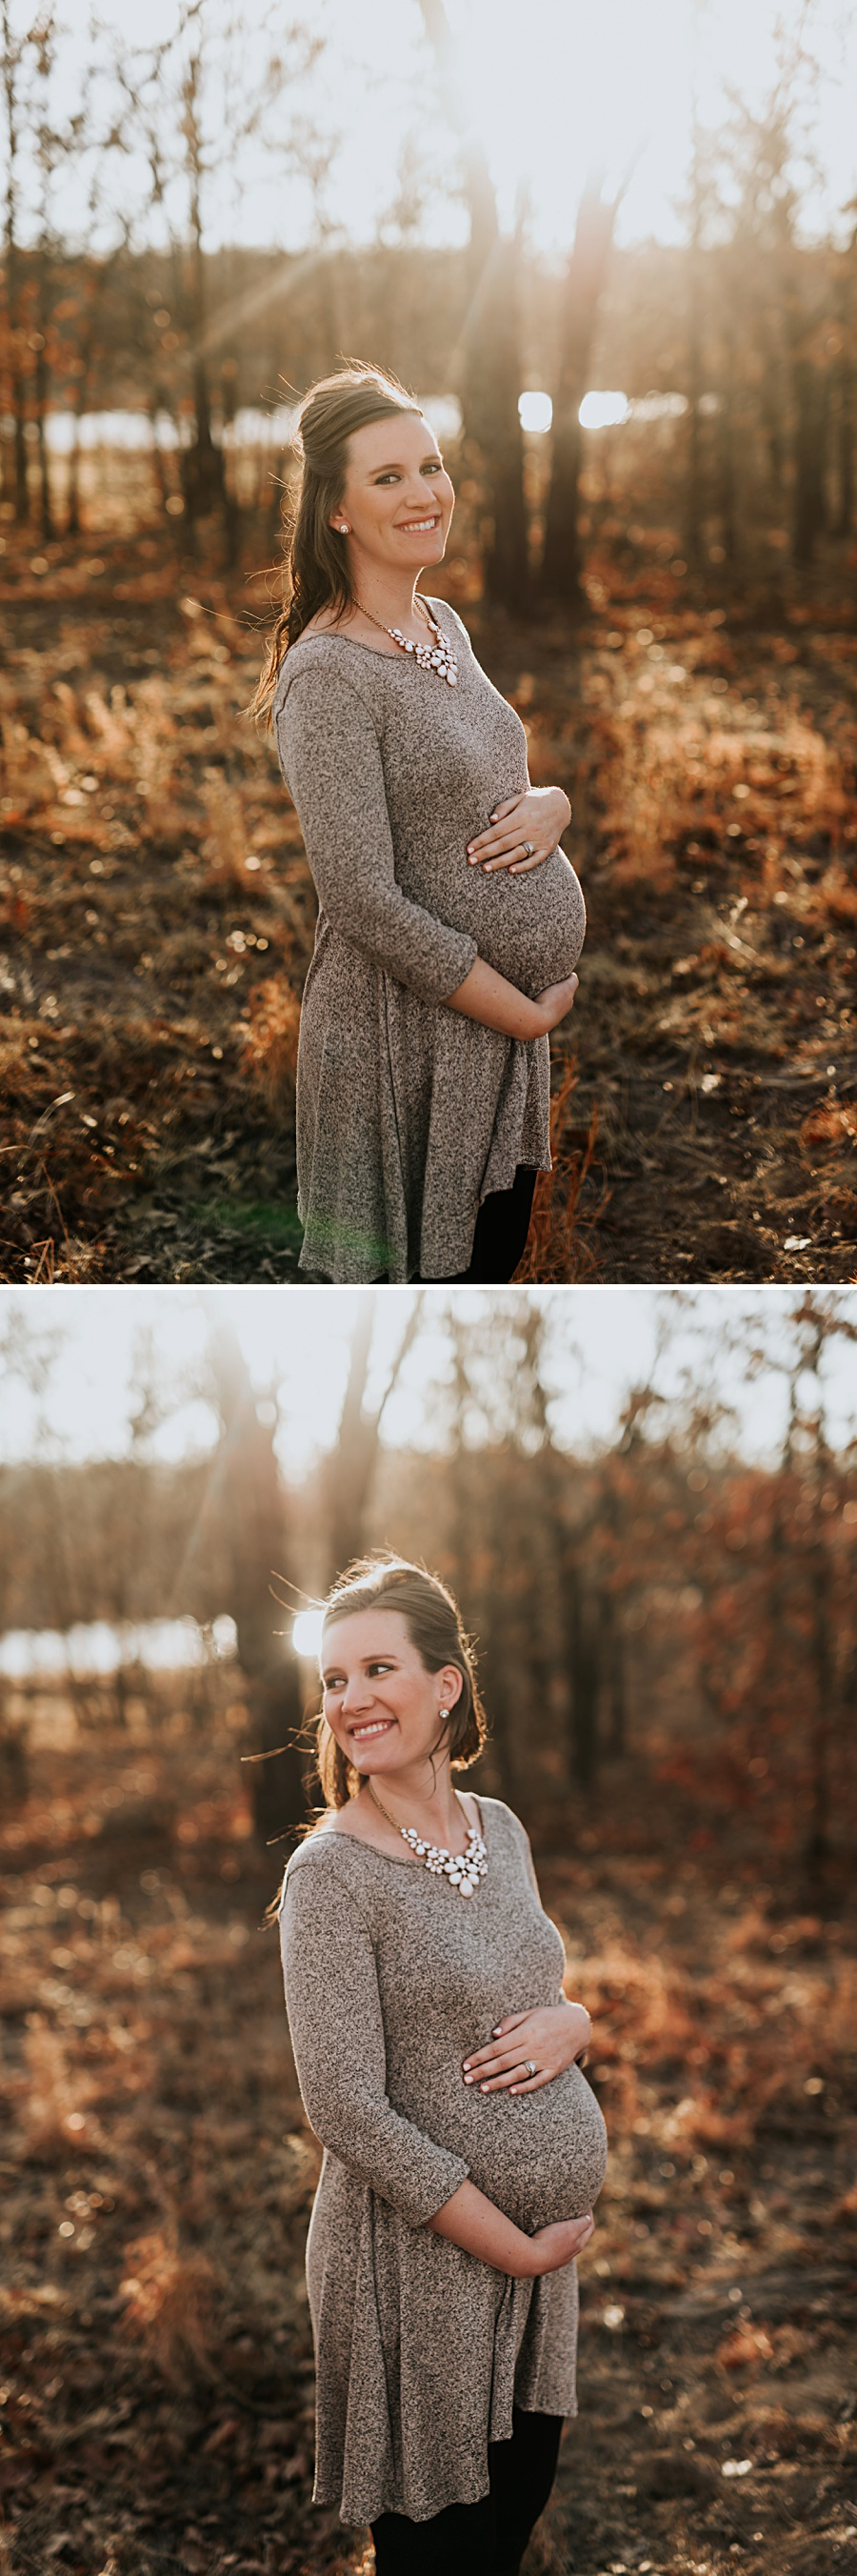 tulsa-maternity-photographer-bixby